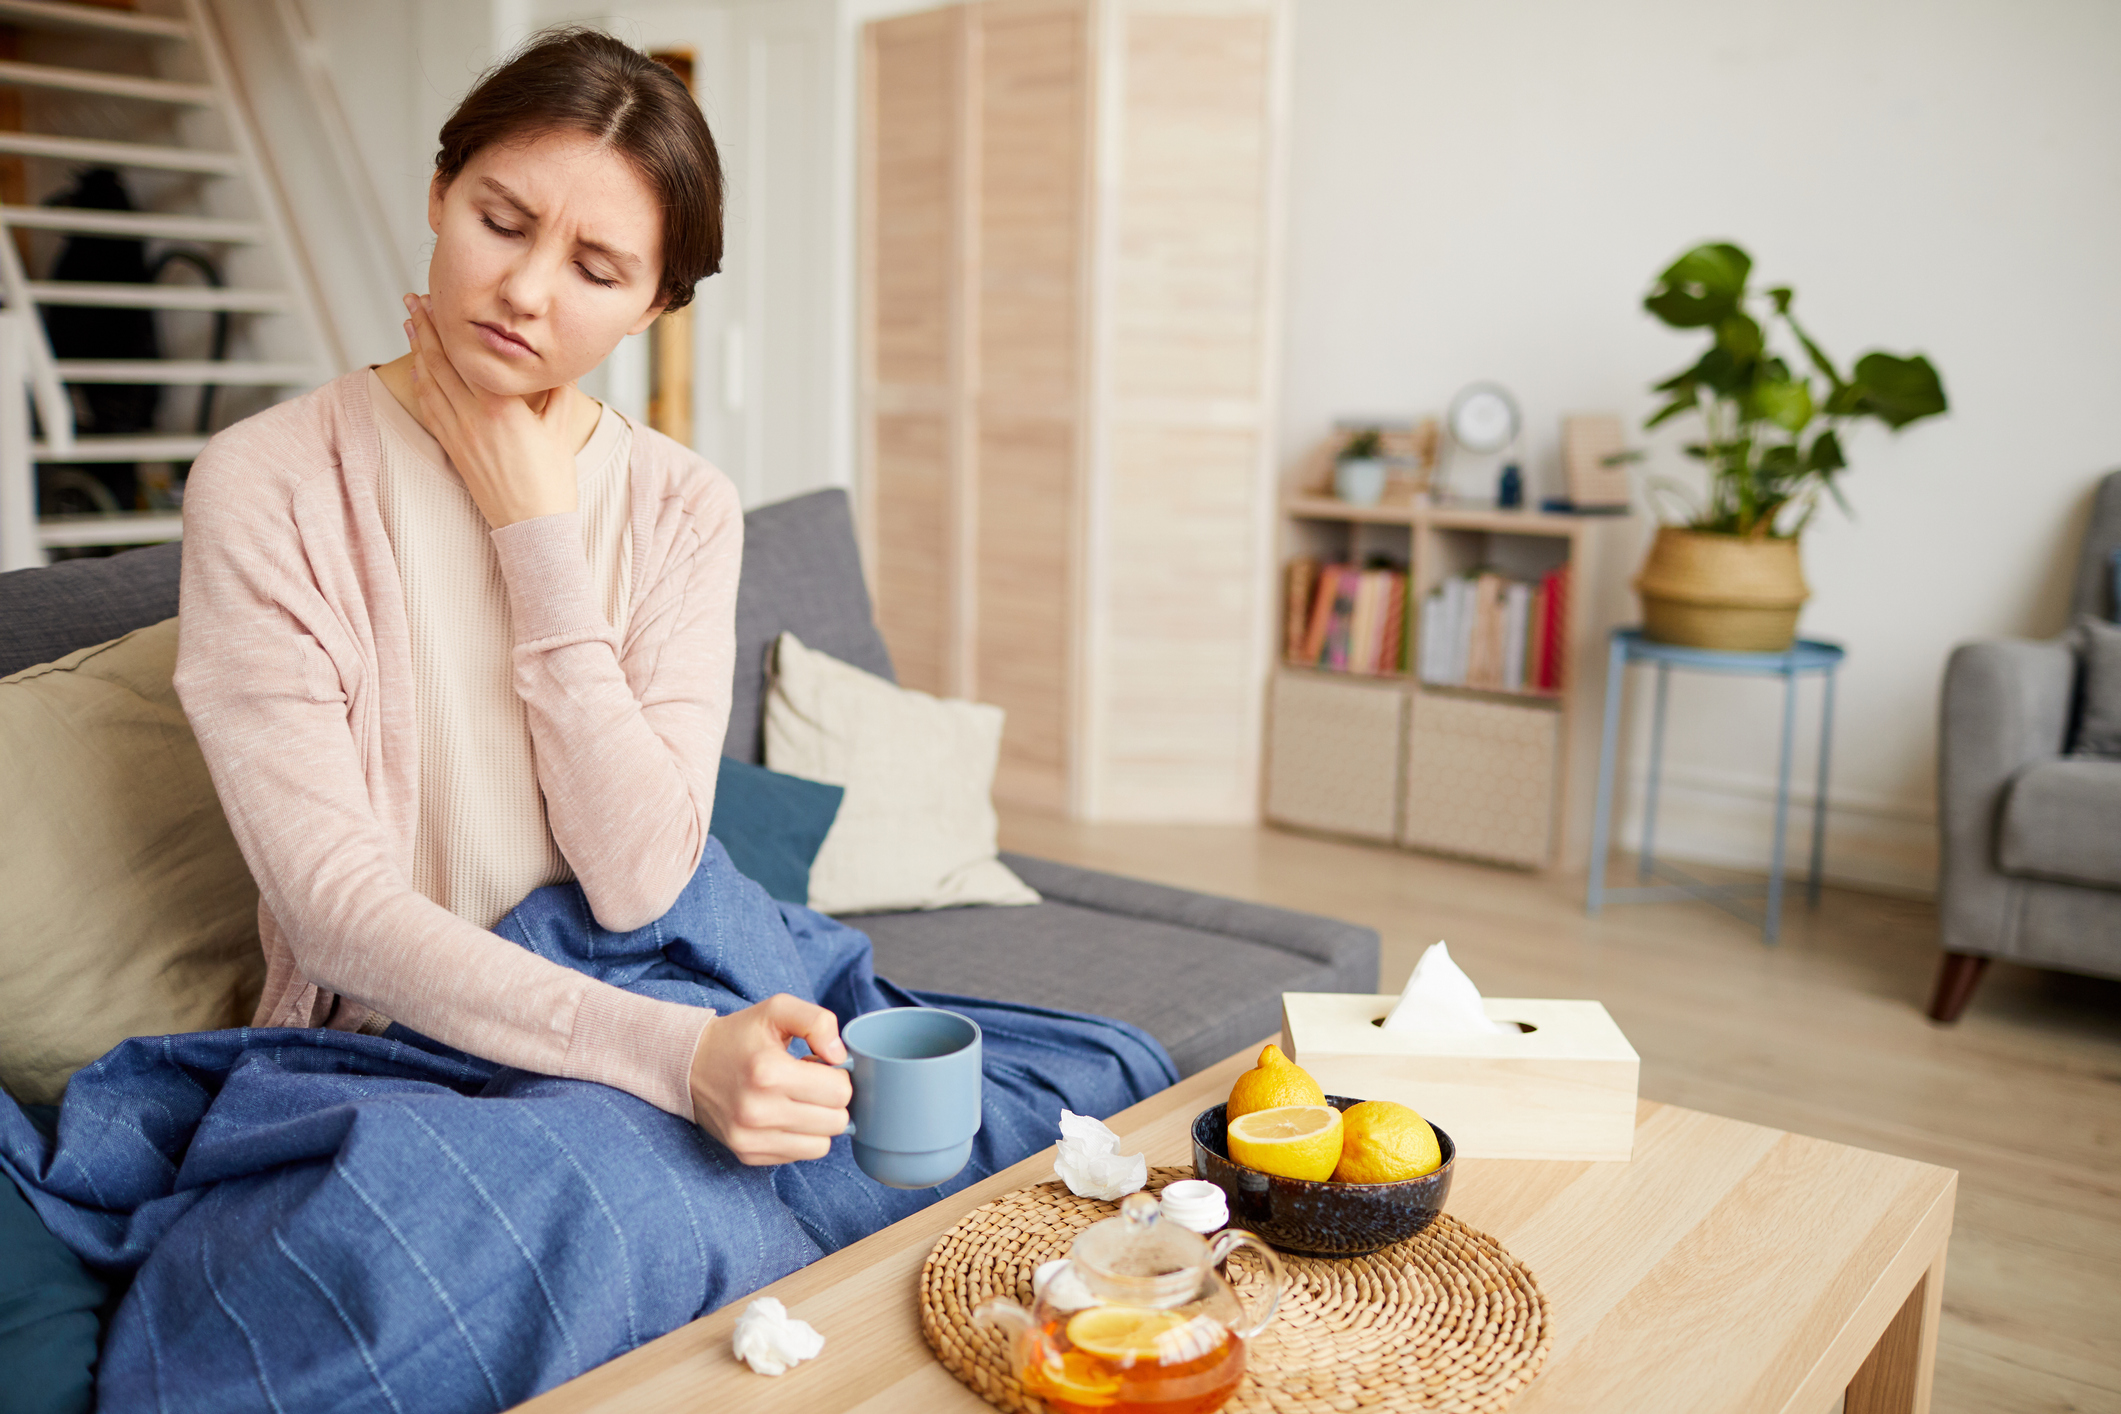 Sore throat? OTC cold remedies won't help and may harm